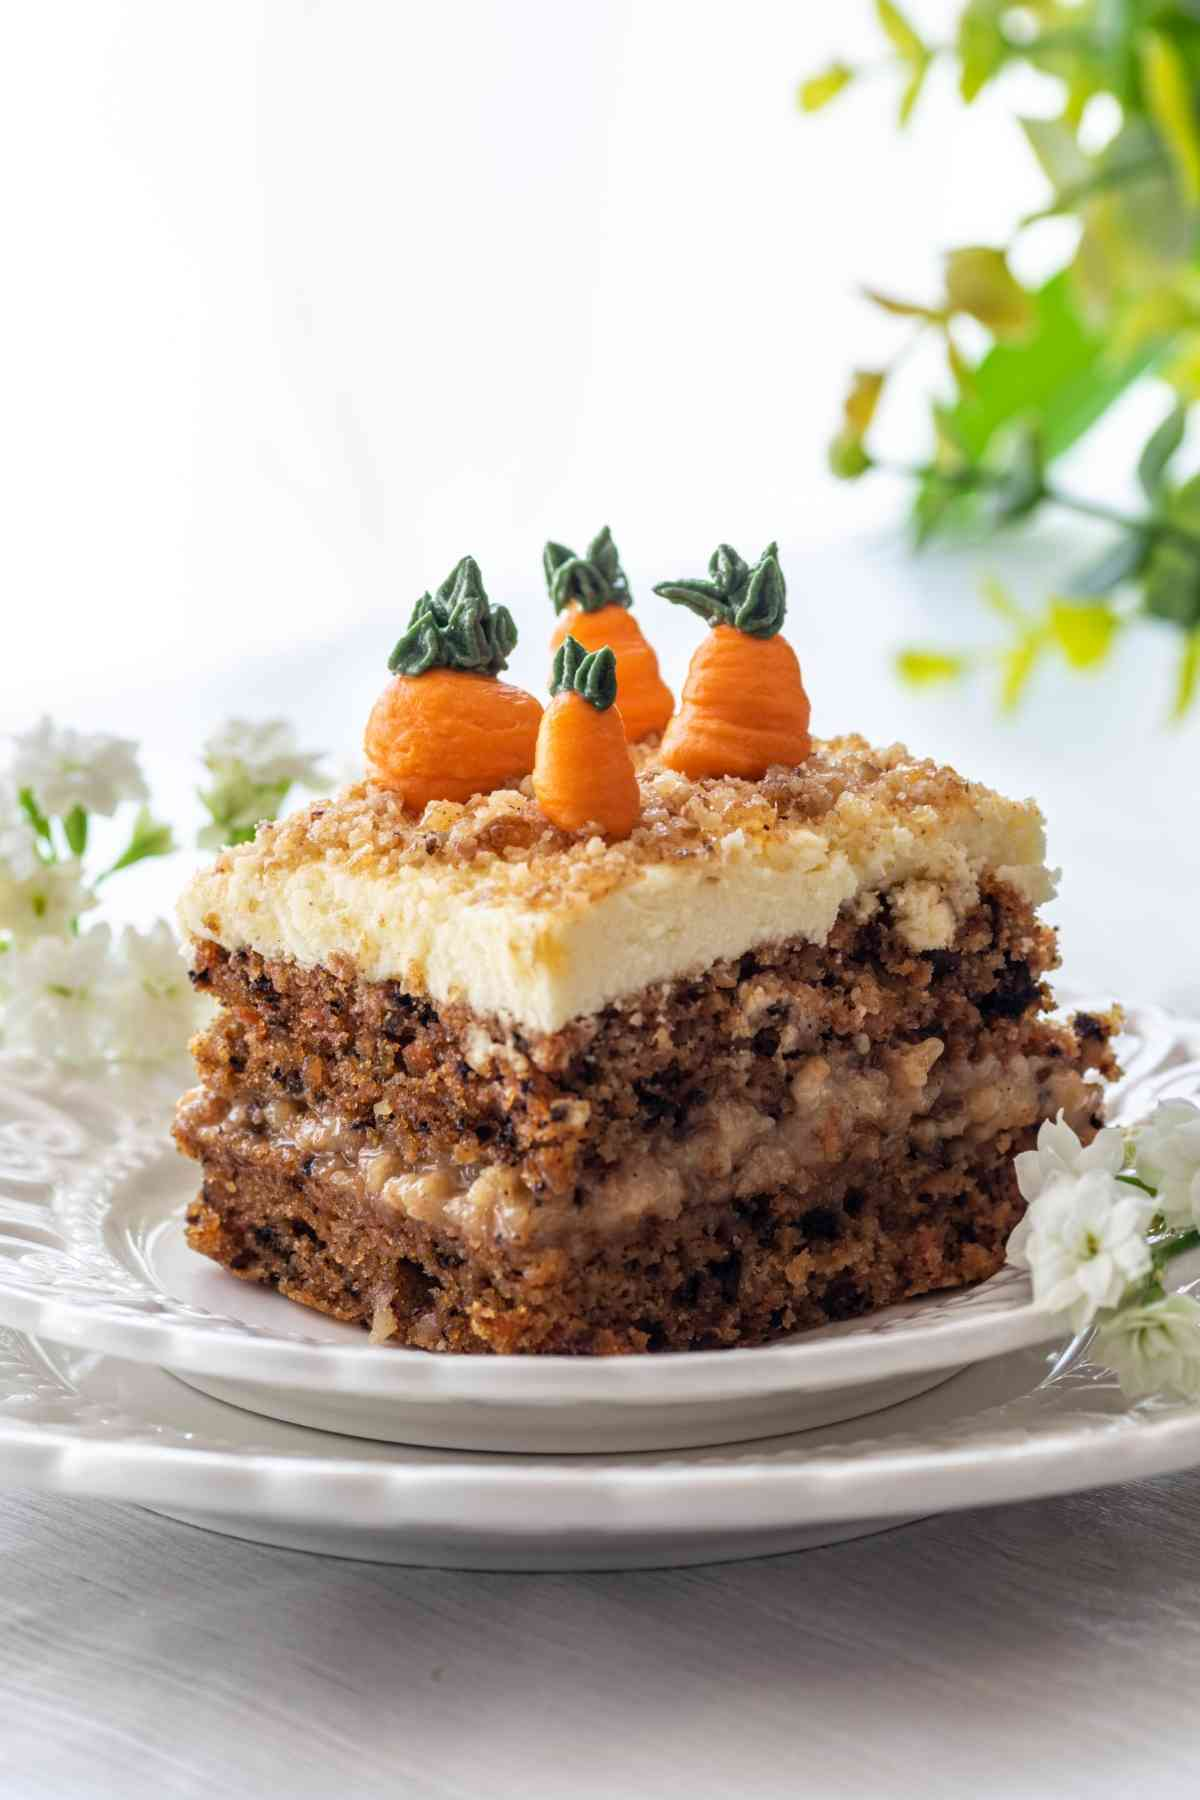 Closeup image of double layer carrot cake decorated with cream cheese carrots